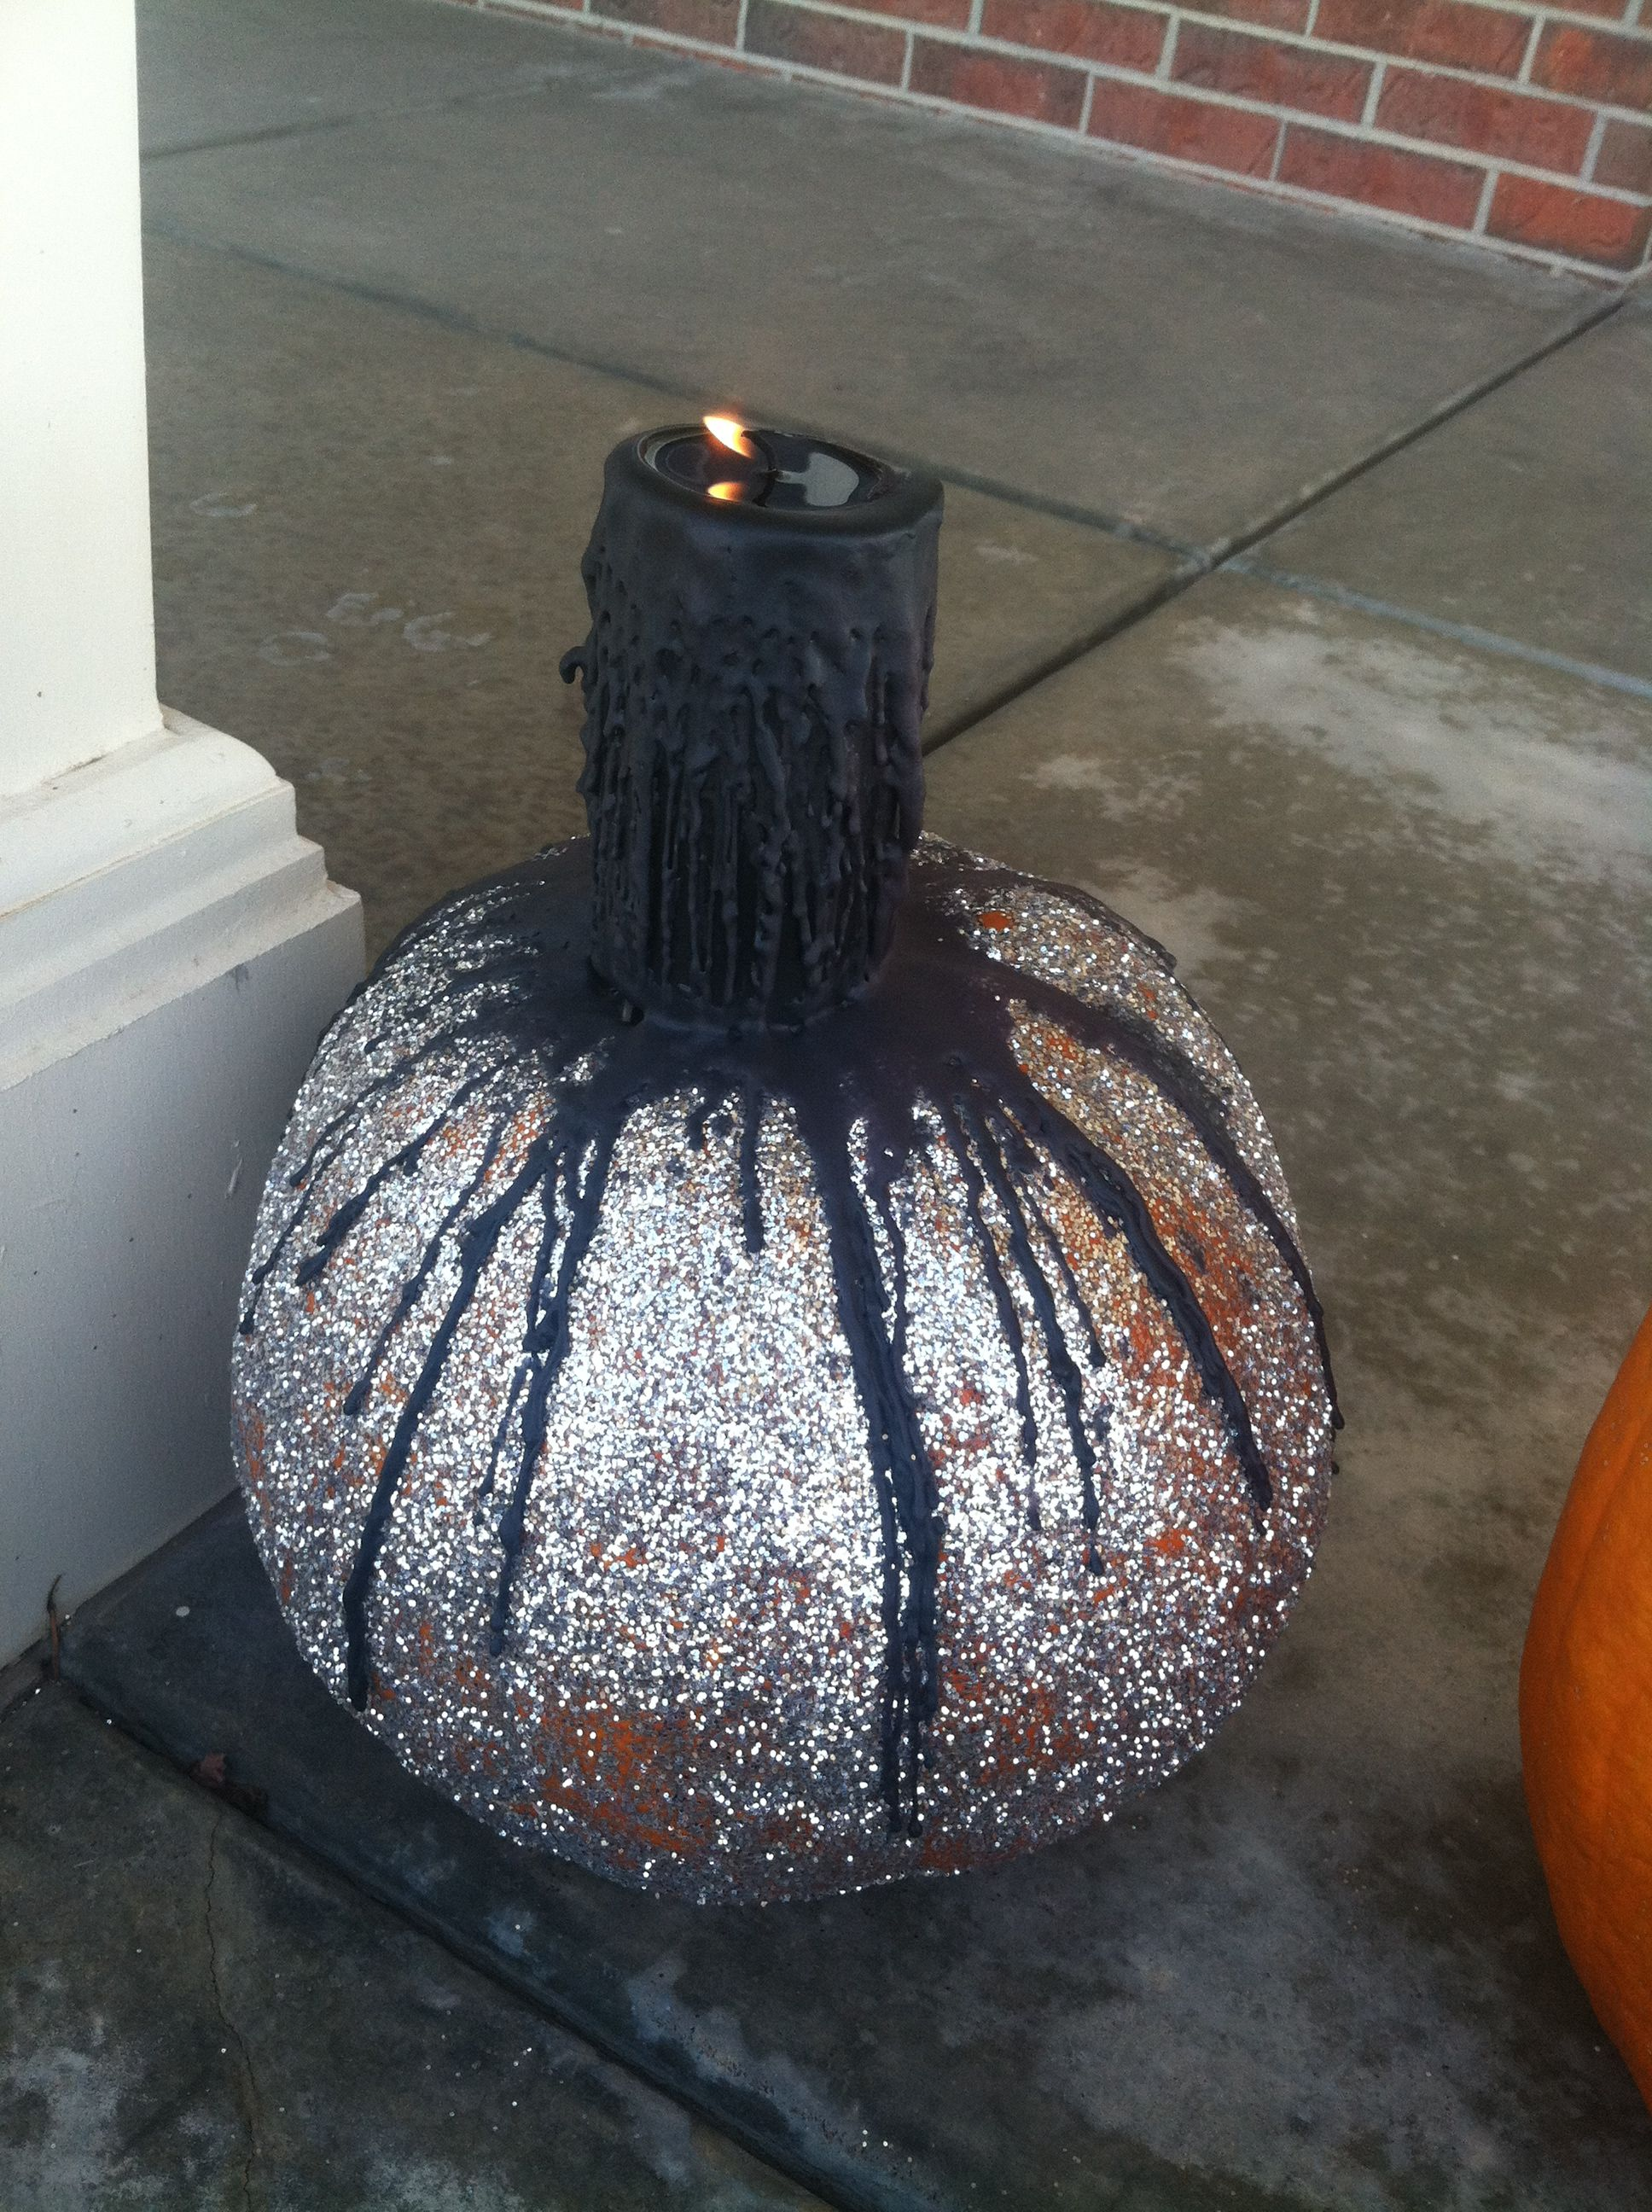 Melted candle over glittered pumpkin instead of waiting for it to